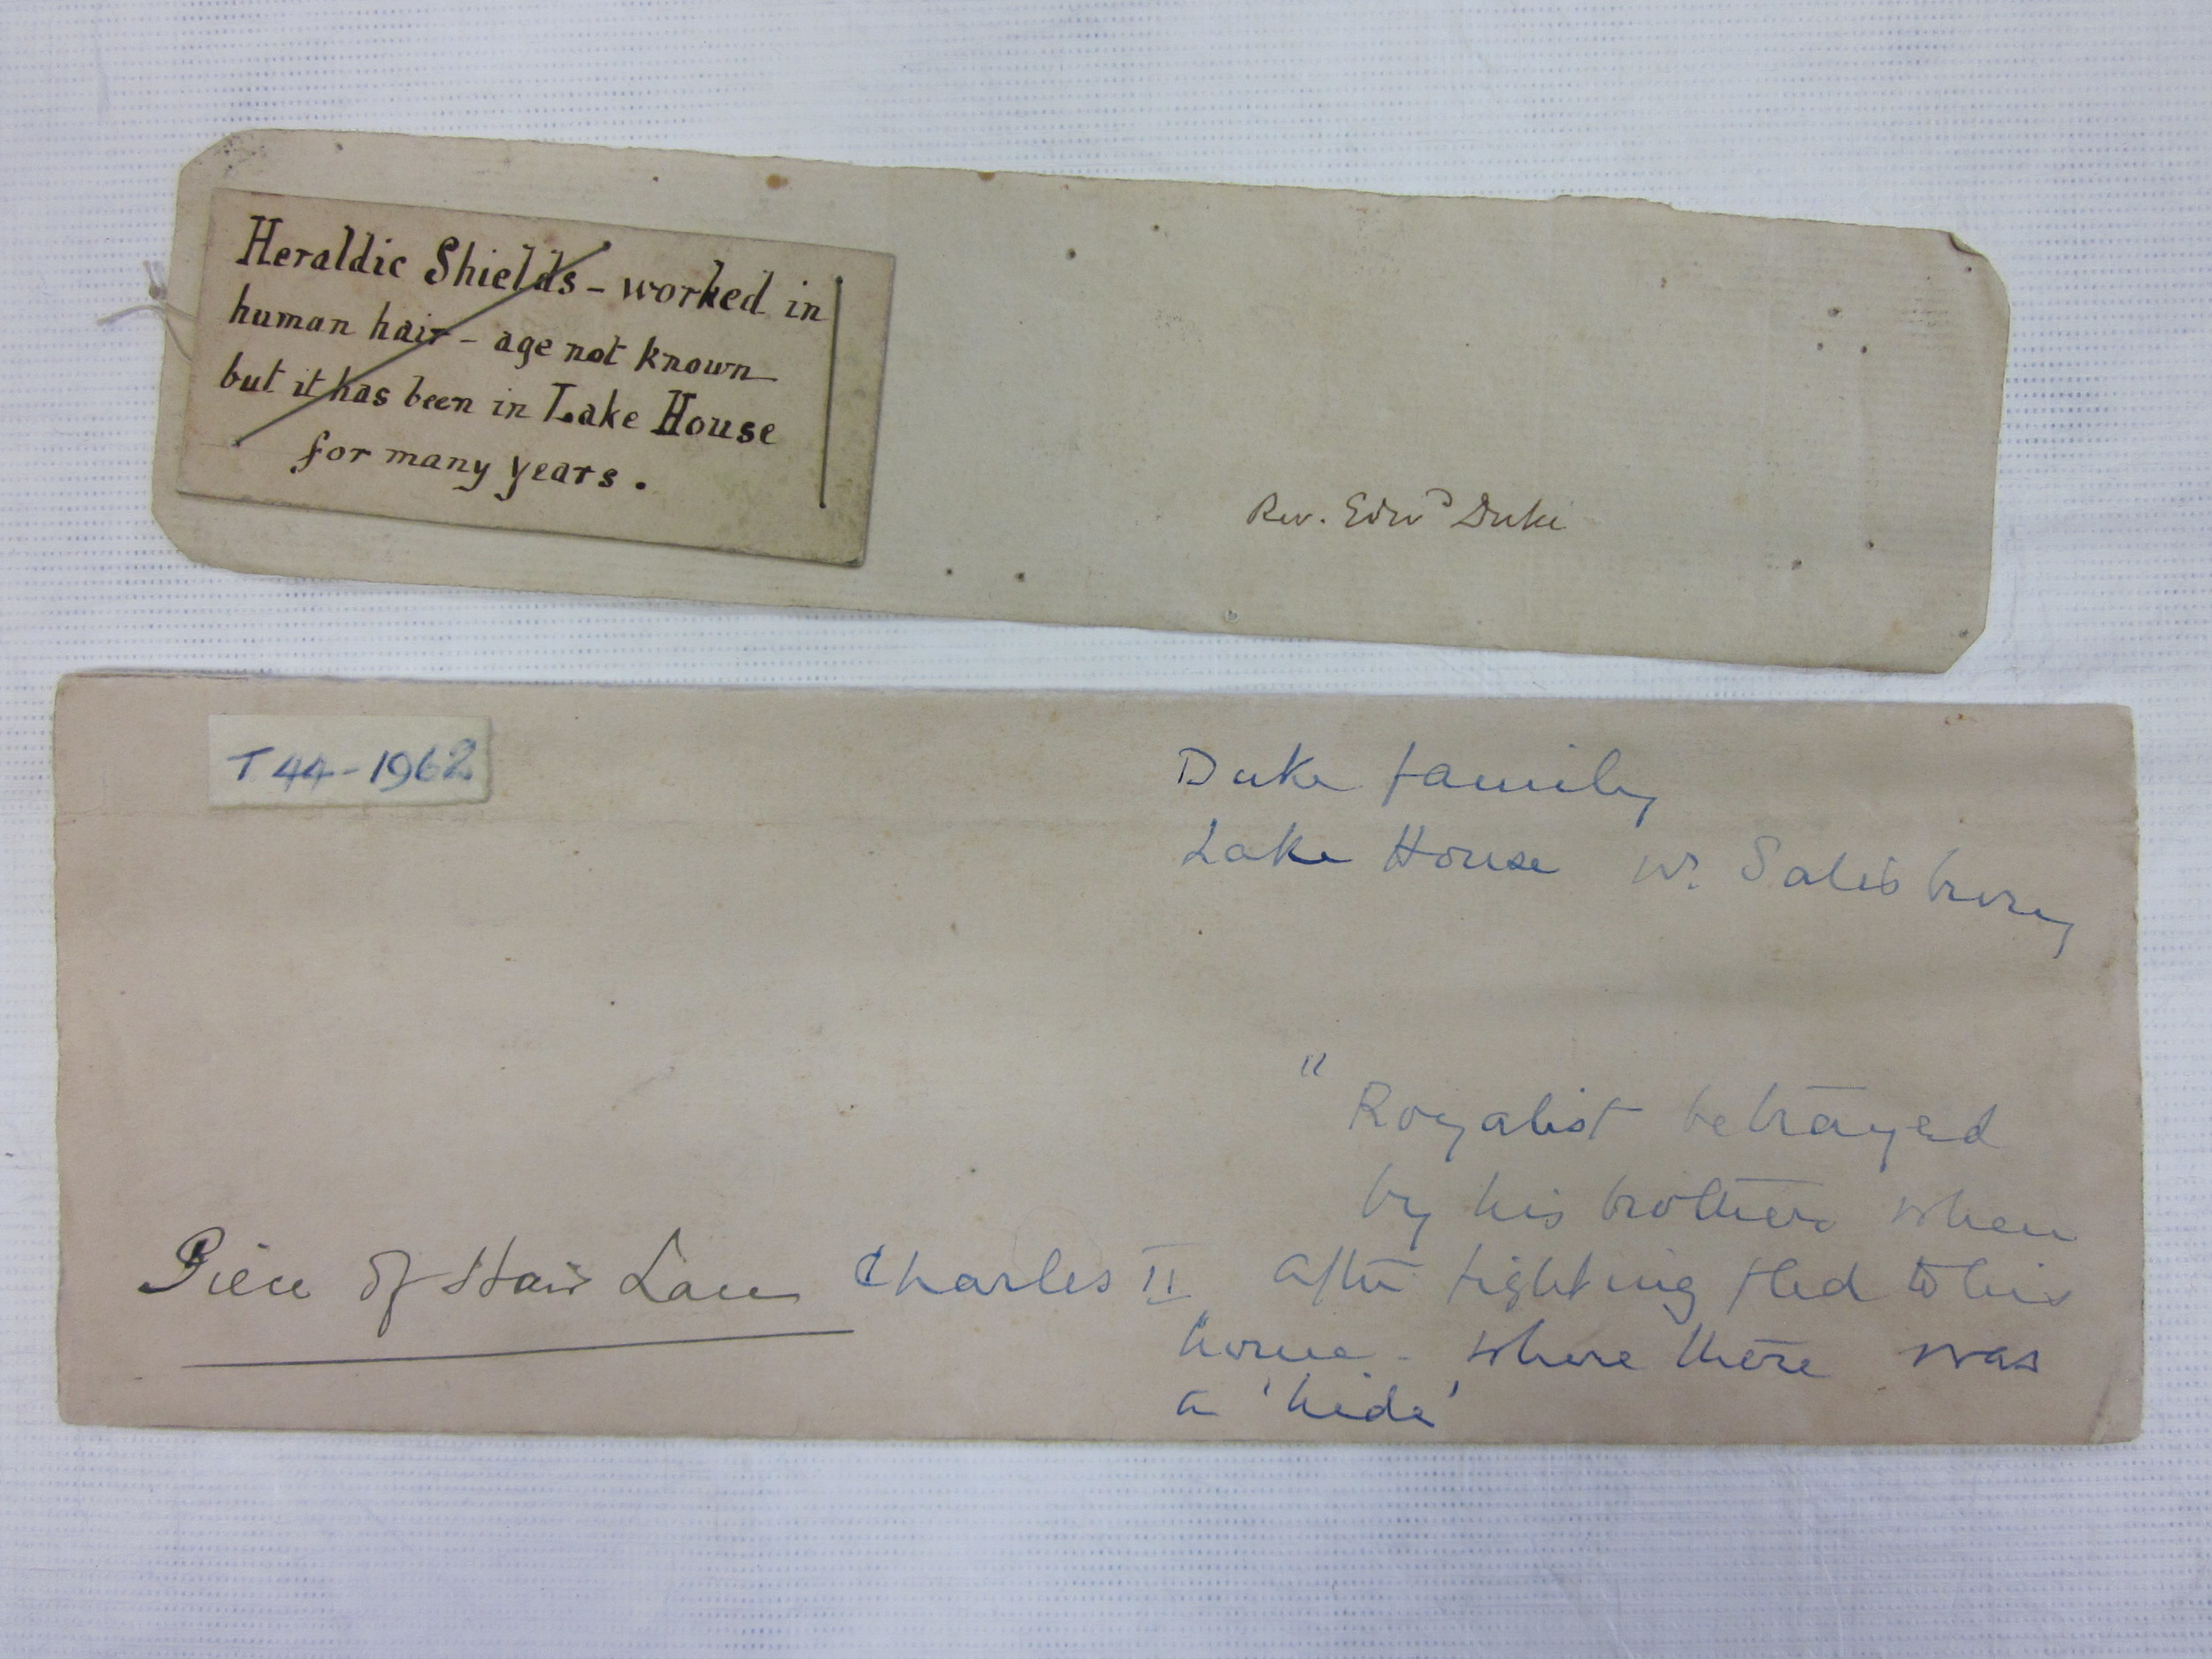 Handwritten note from The Victoria and Albert Museum Collection